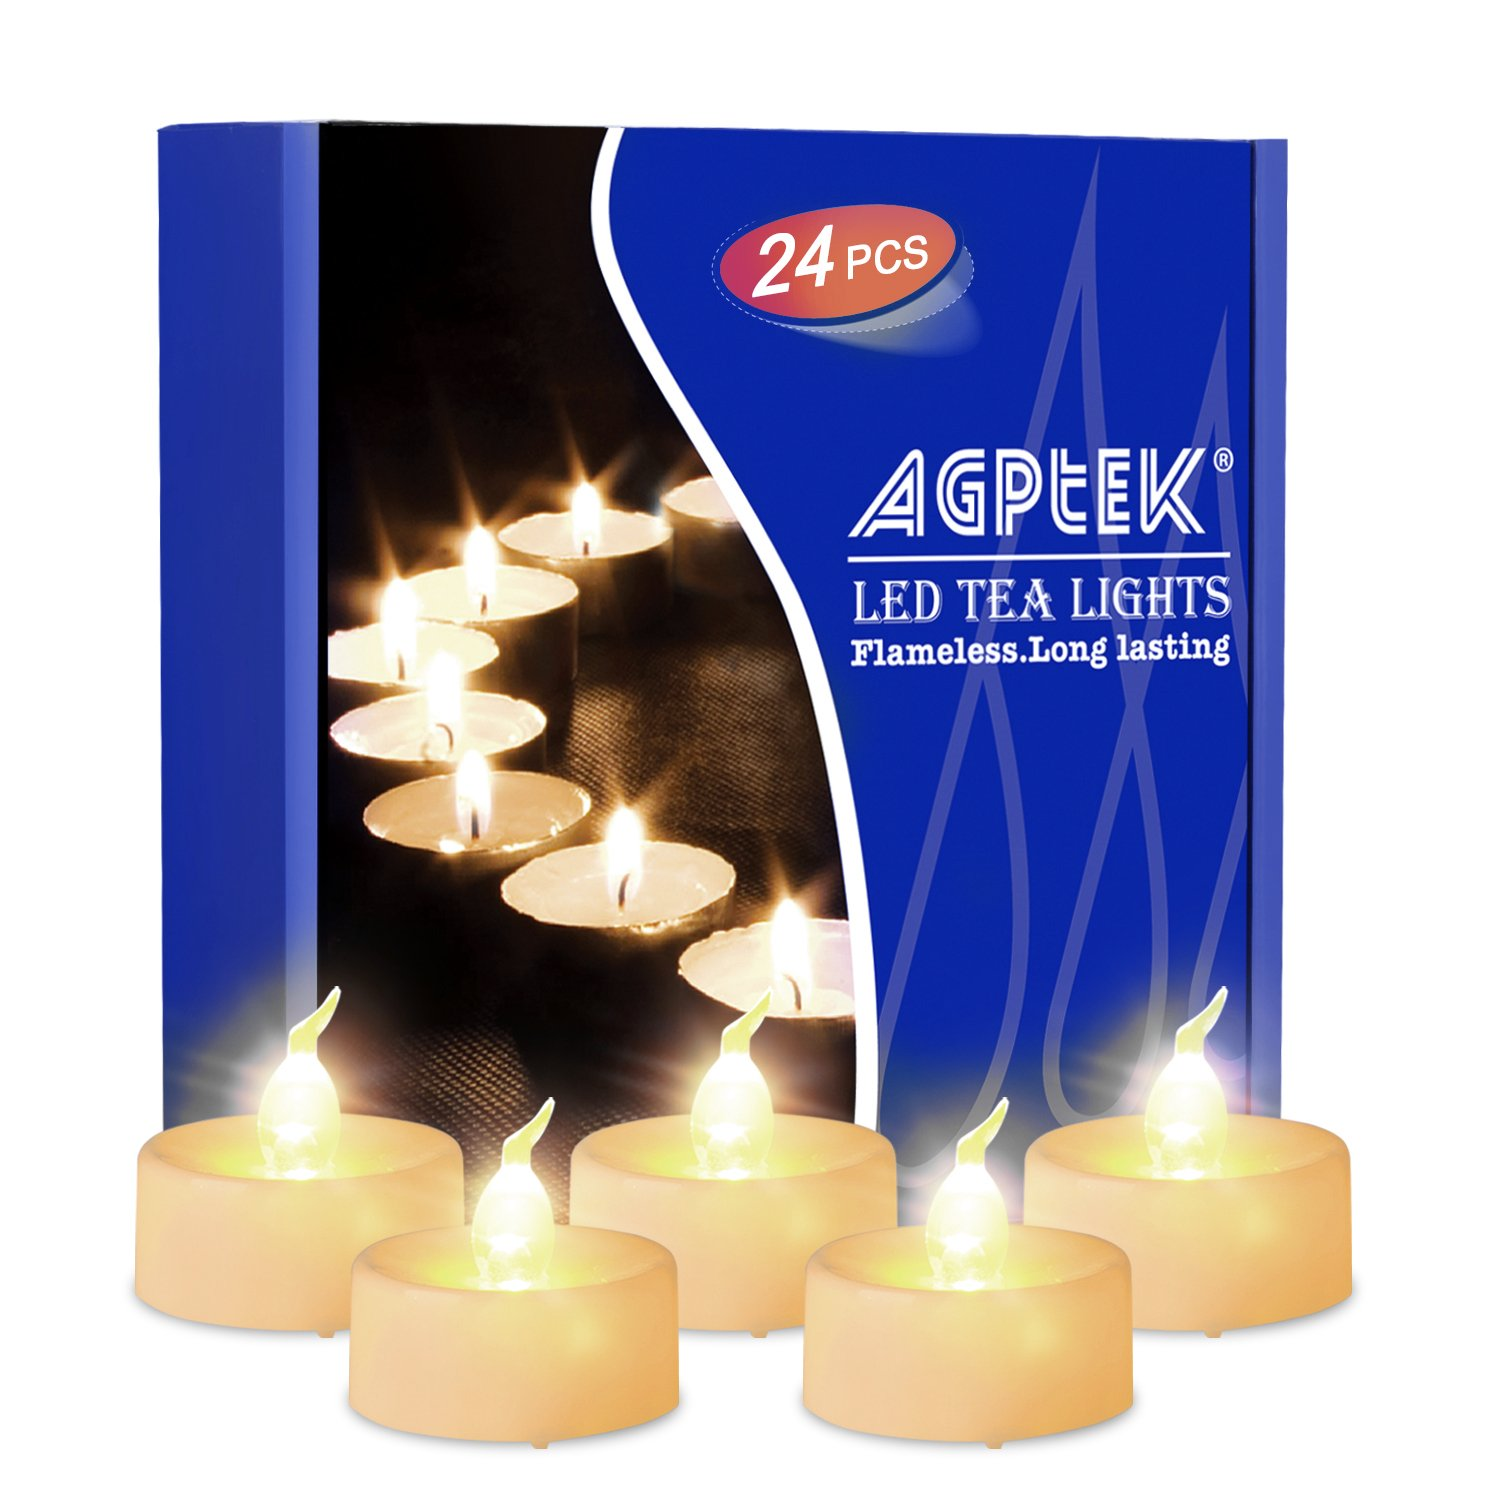 AGPtEK Timer Flickering Flameless LED Candles Battery-Operated Tealights for Wedding Holiday Party Home Decoration 24pcs(Warm White) BrainyTrade B00AIJE1KSLKJ